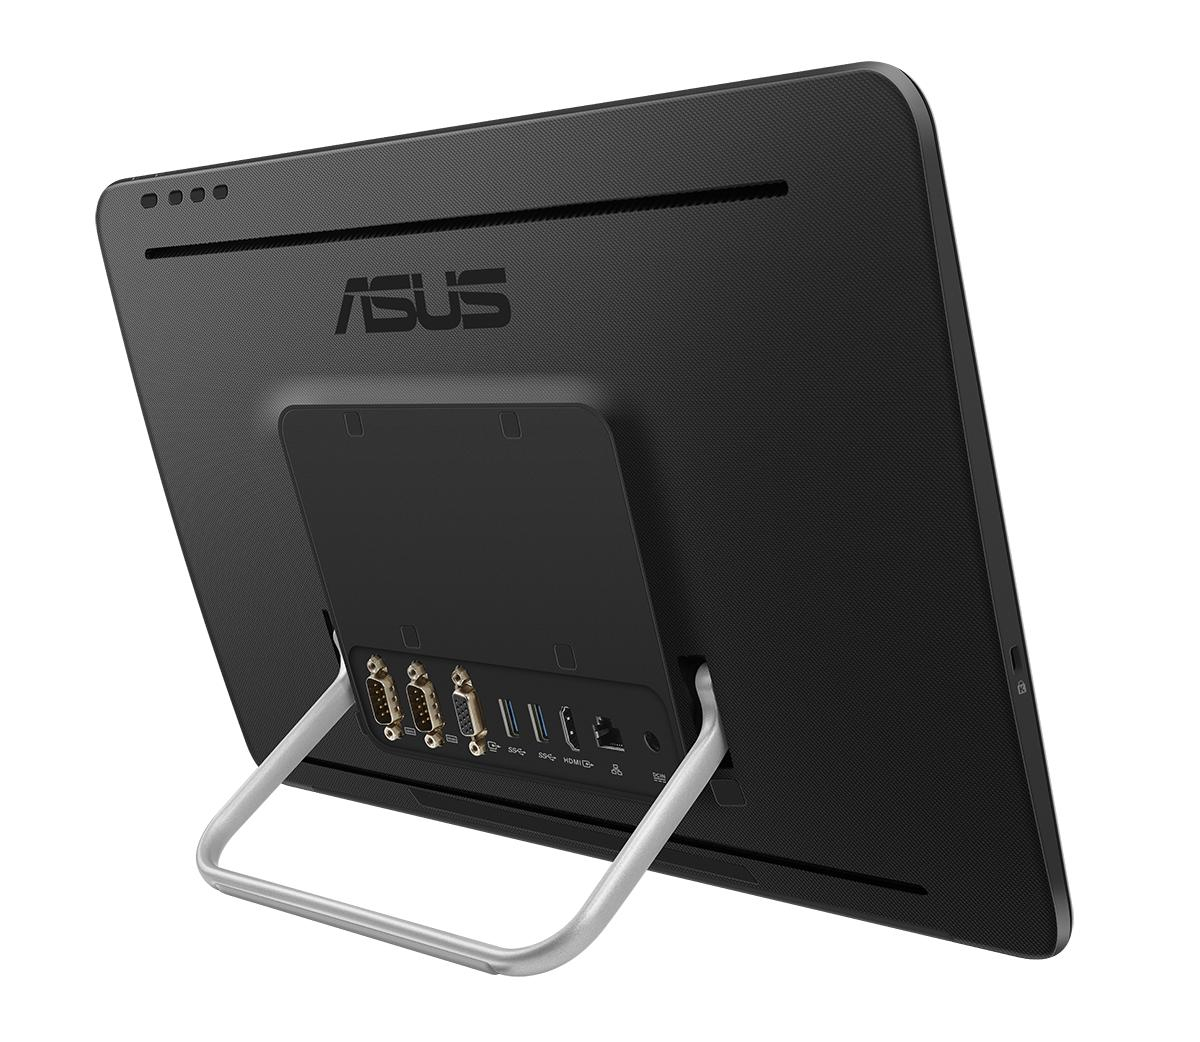 ASUS All-in-One PC A41GART - All-in-One (Komplettlösung)